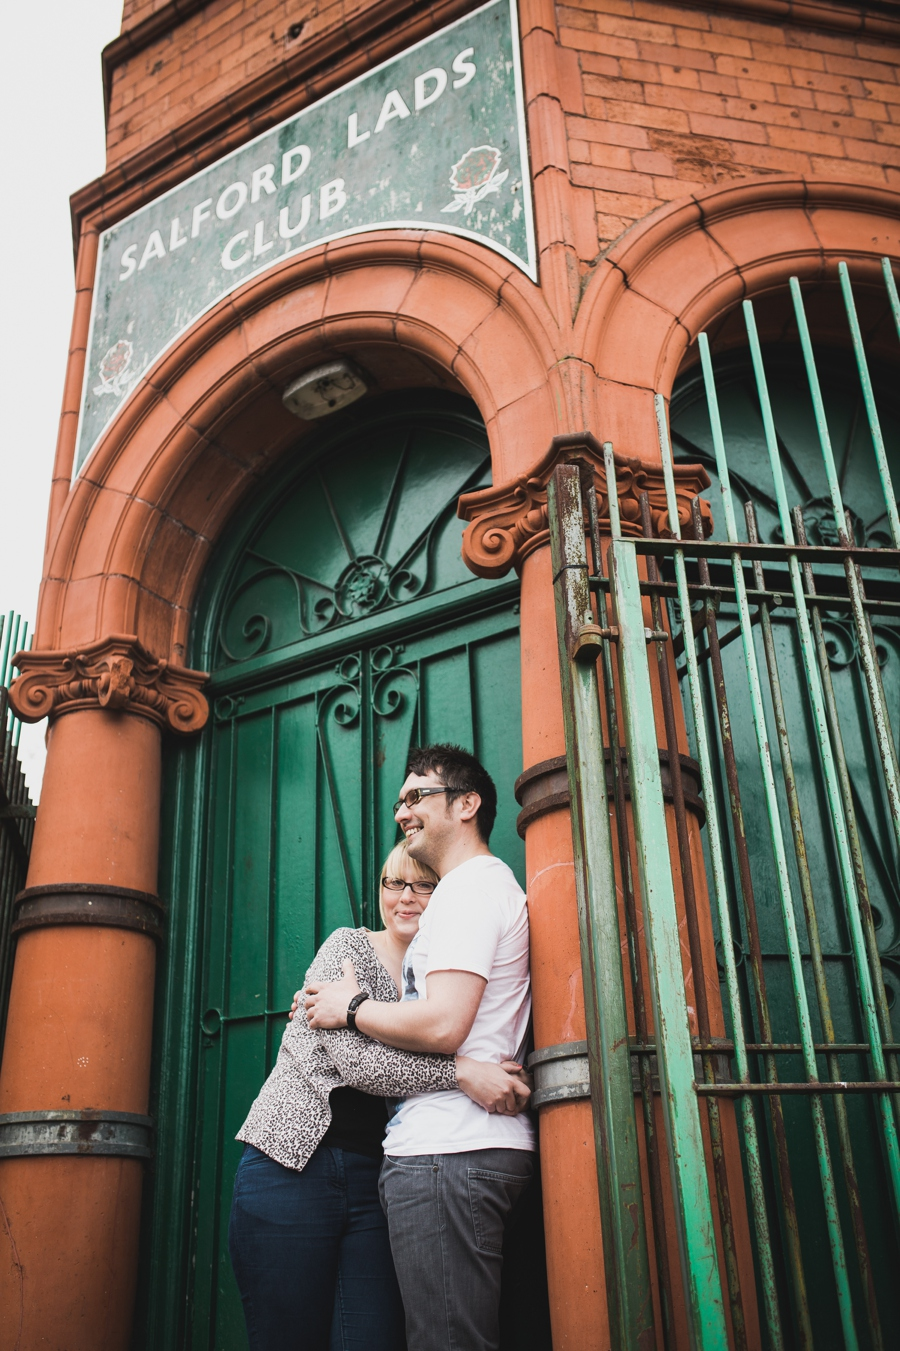 Cheshire Wedding Photographer Manchester Engagement Shoot Salford Lads Club Lauren and Warren_0012